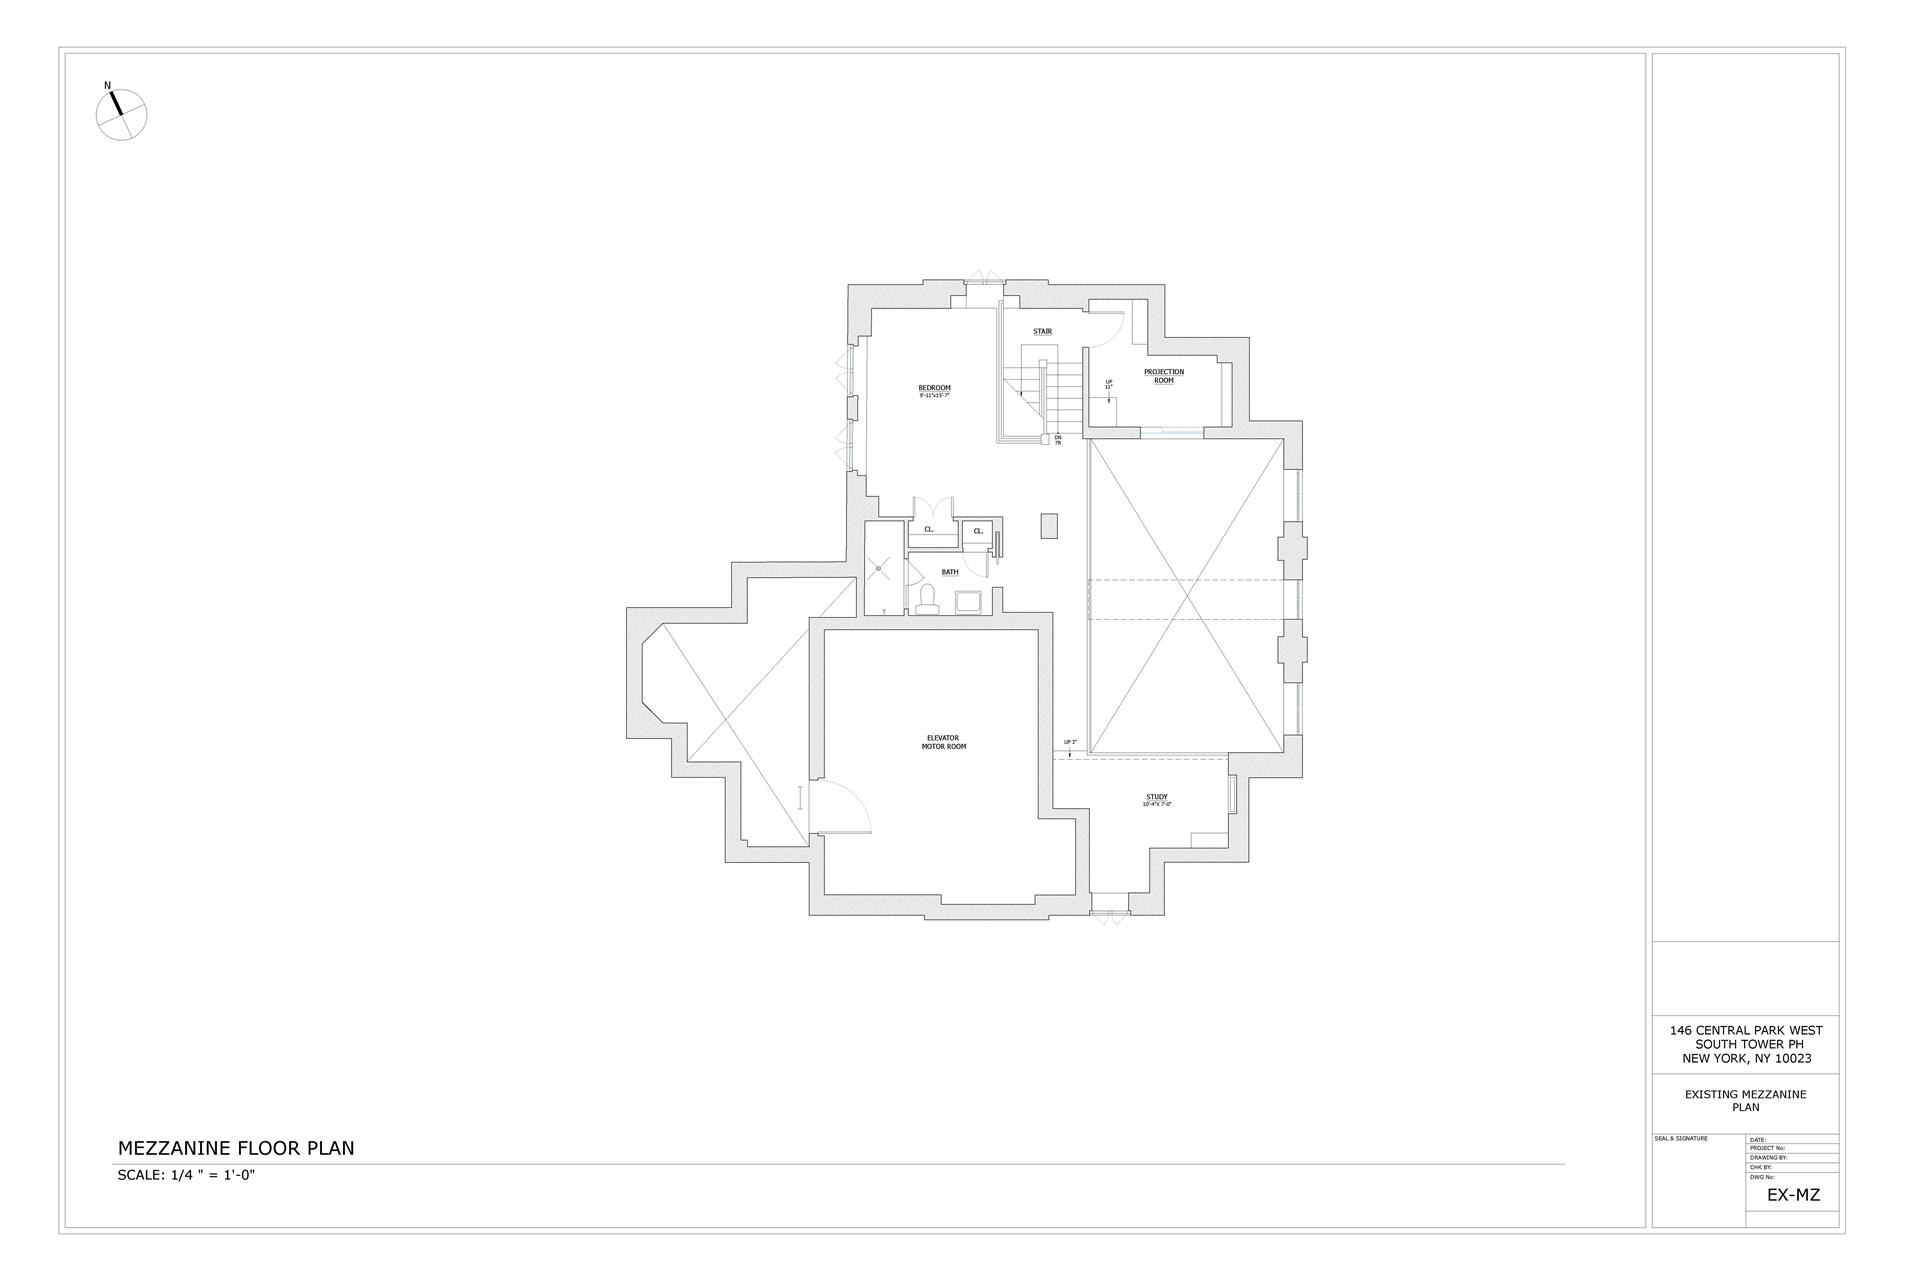 Floor plan of SAN REMO TENANTS CO, 145-146 Central Park West, PHC - Upper West Side, New York